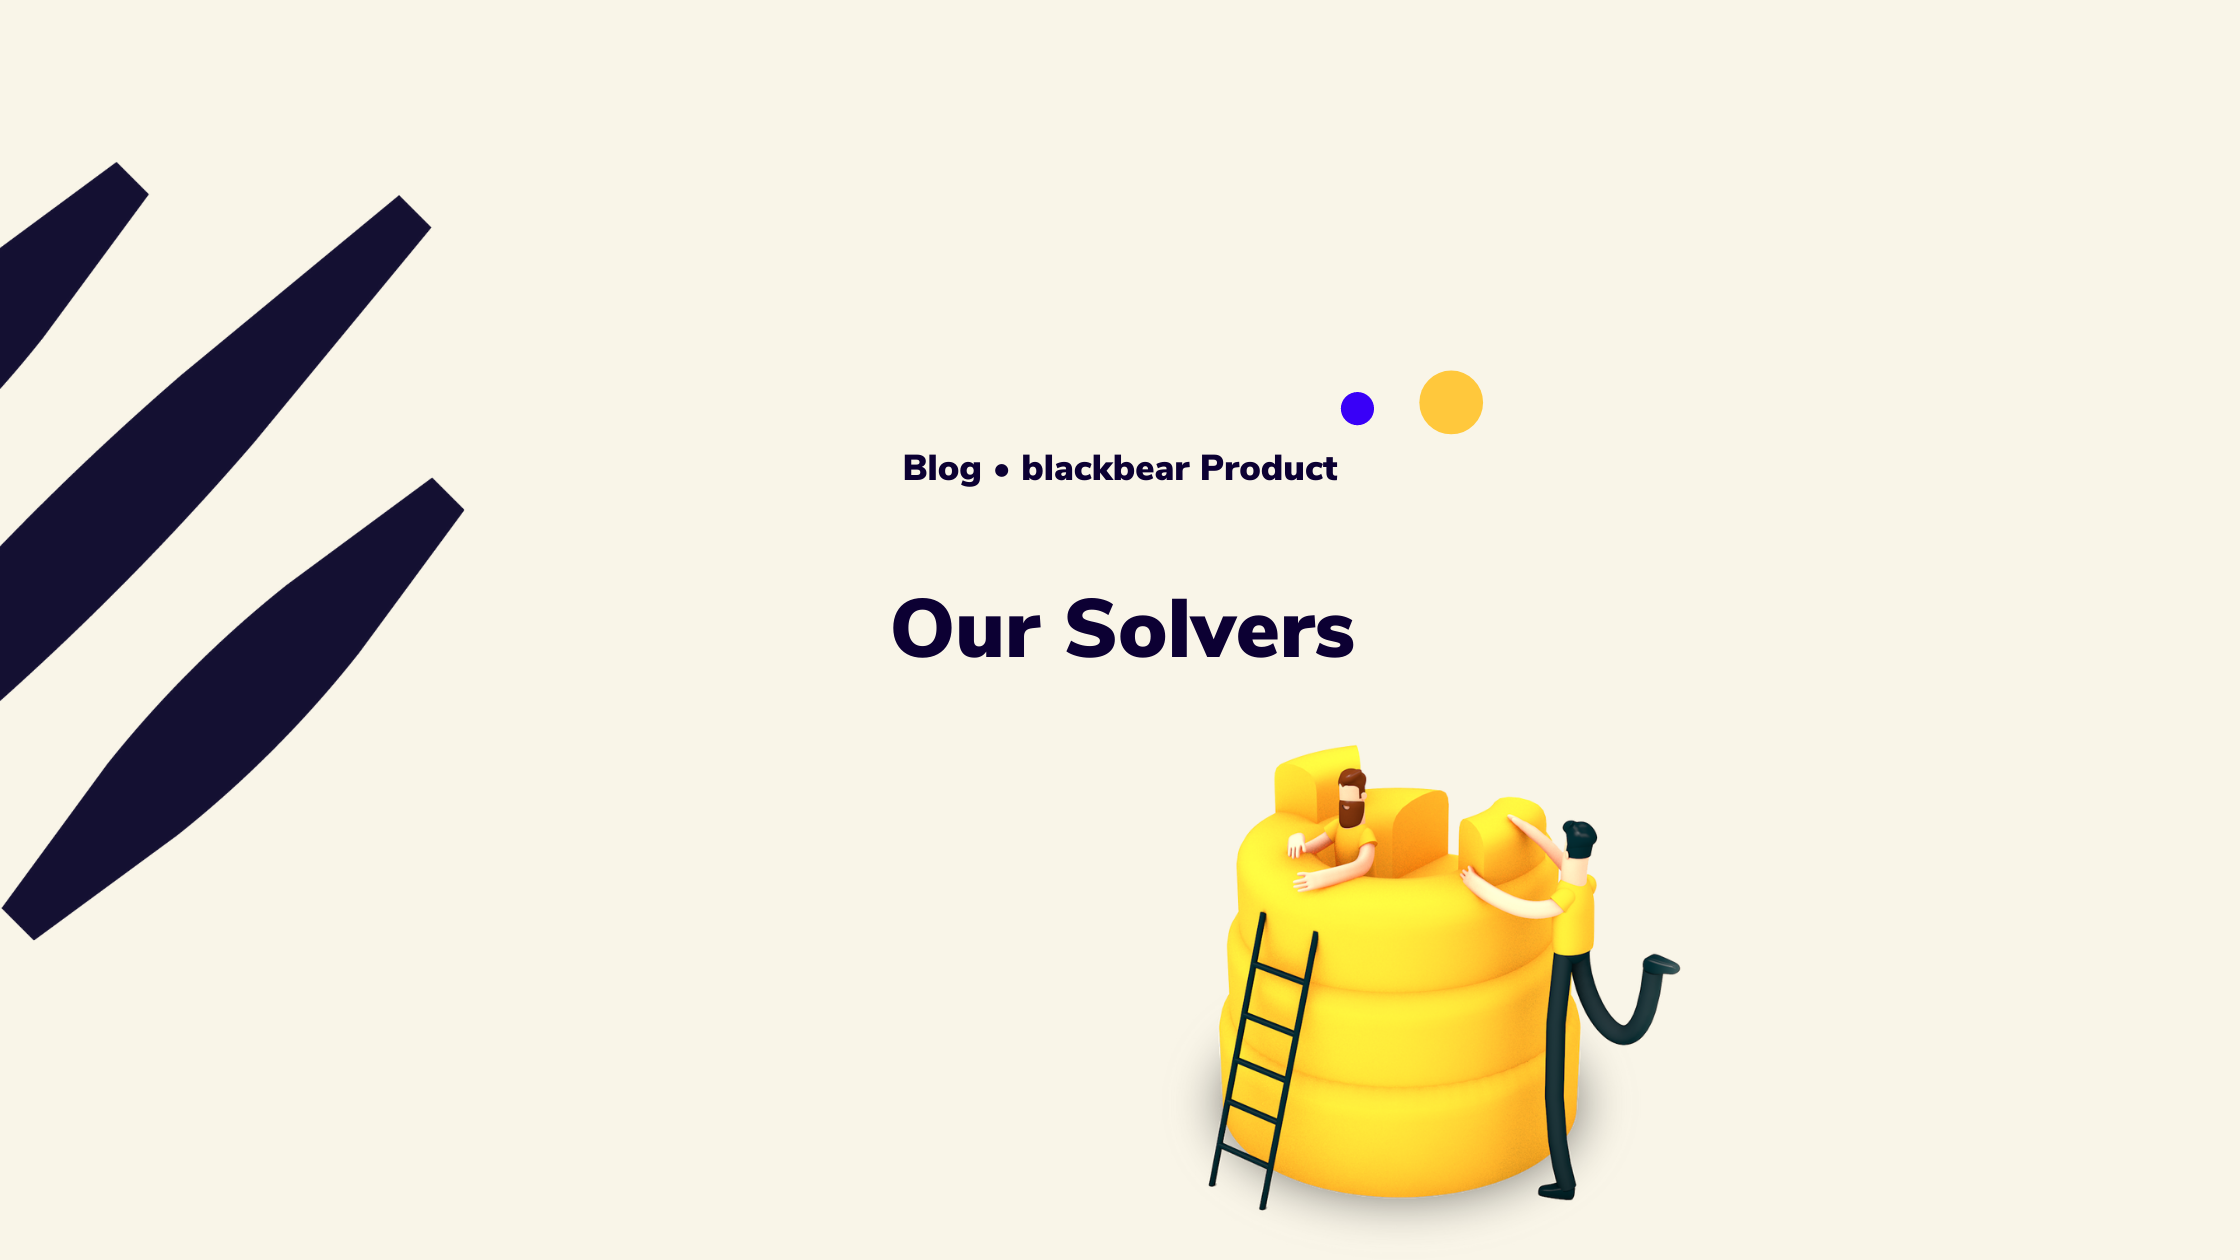 Our Solvers